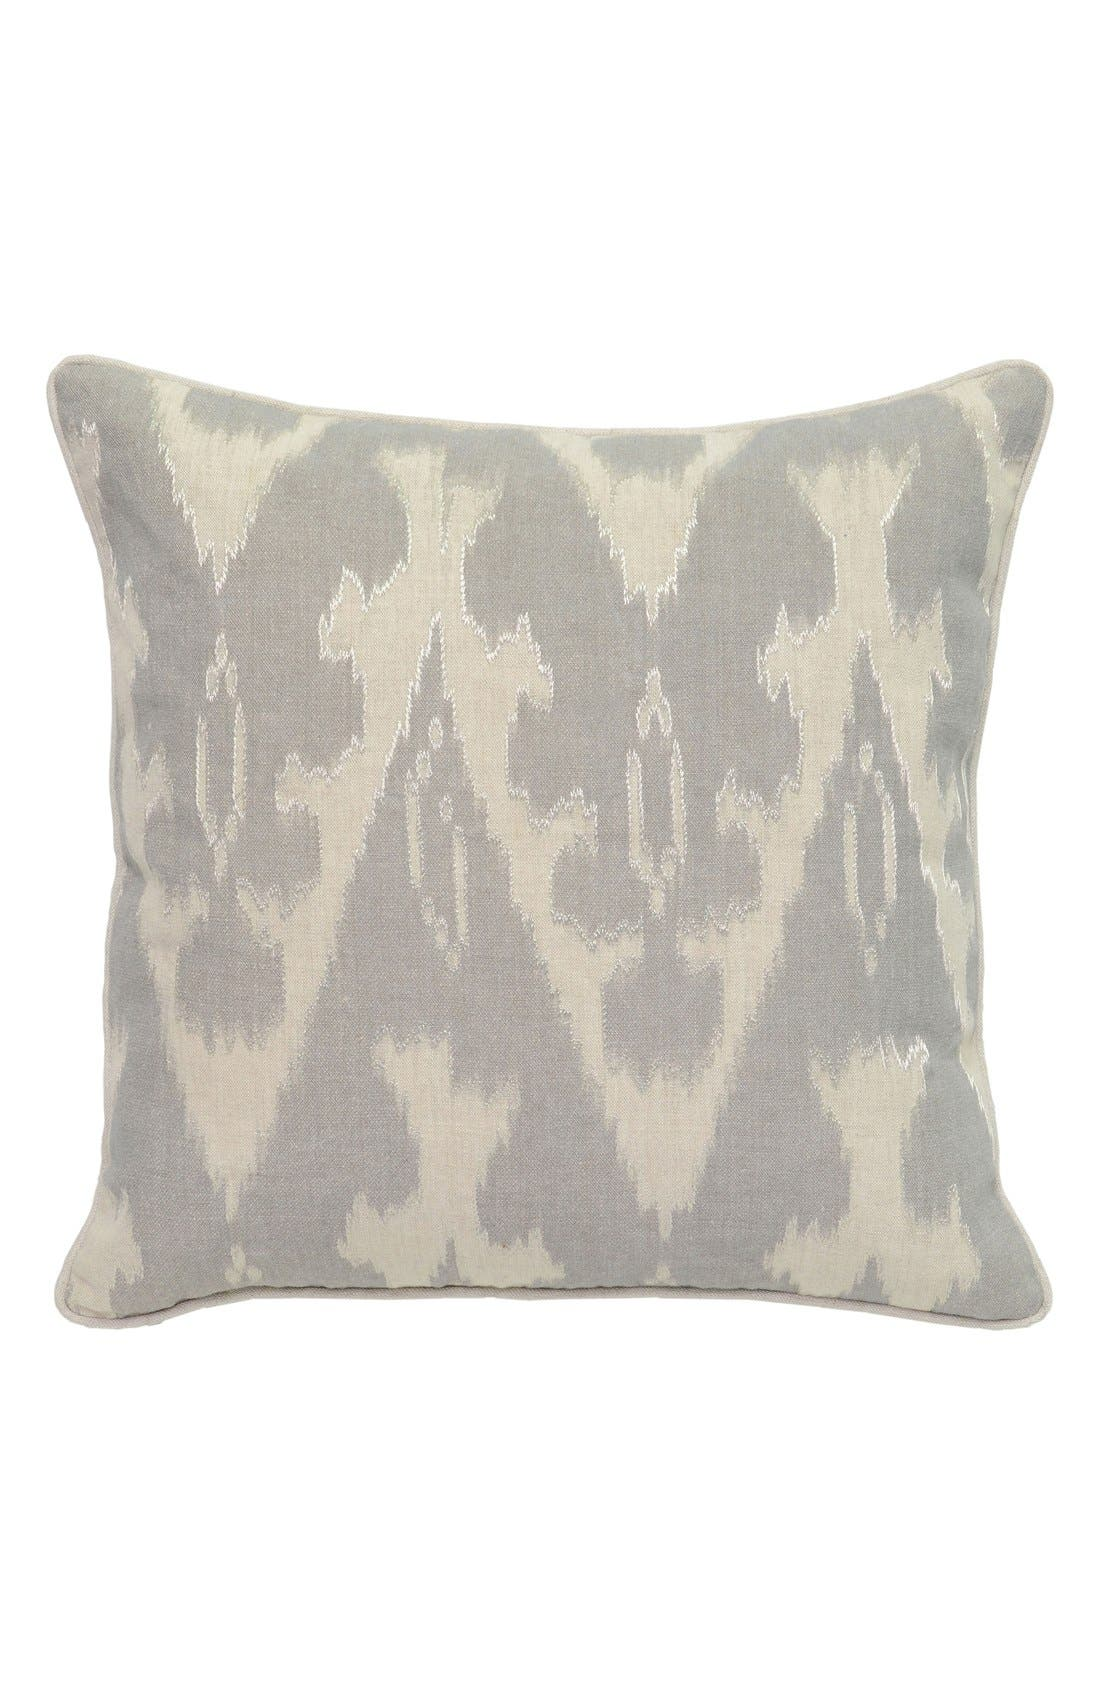 Fae Accent Pillow,                         Main,                         color, Beige/ Grey